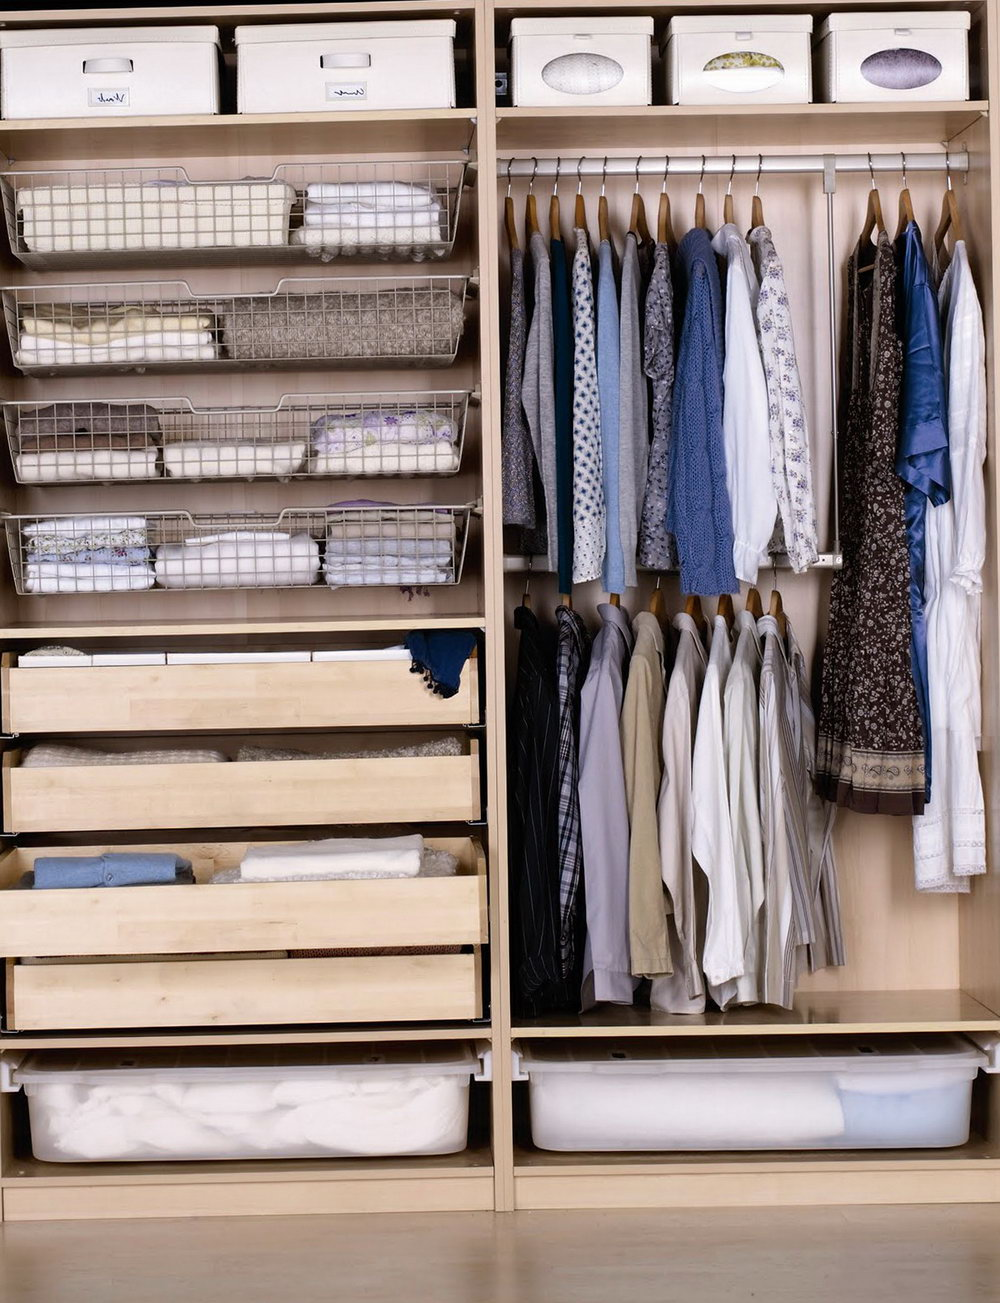 Ikea Closet Storage | Closet Solutions Ikea | Free Standing Closets Ikea